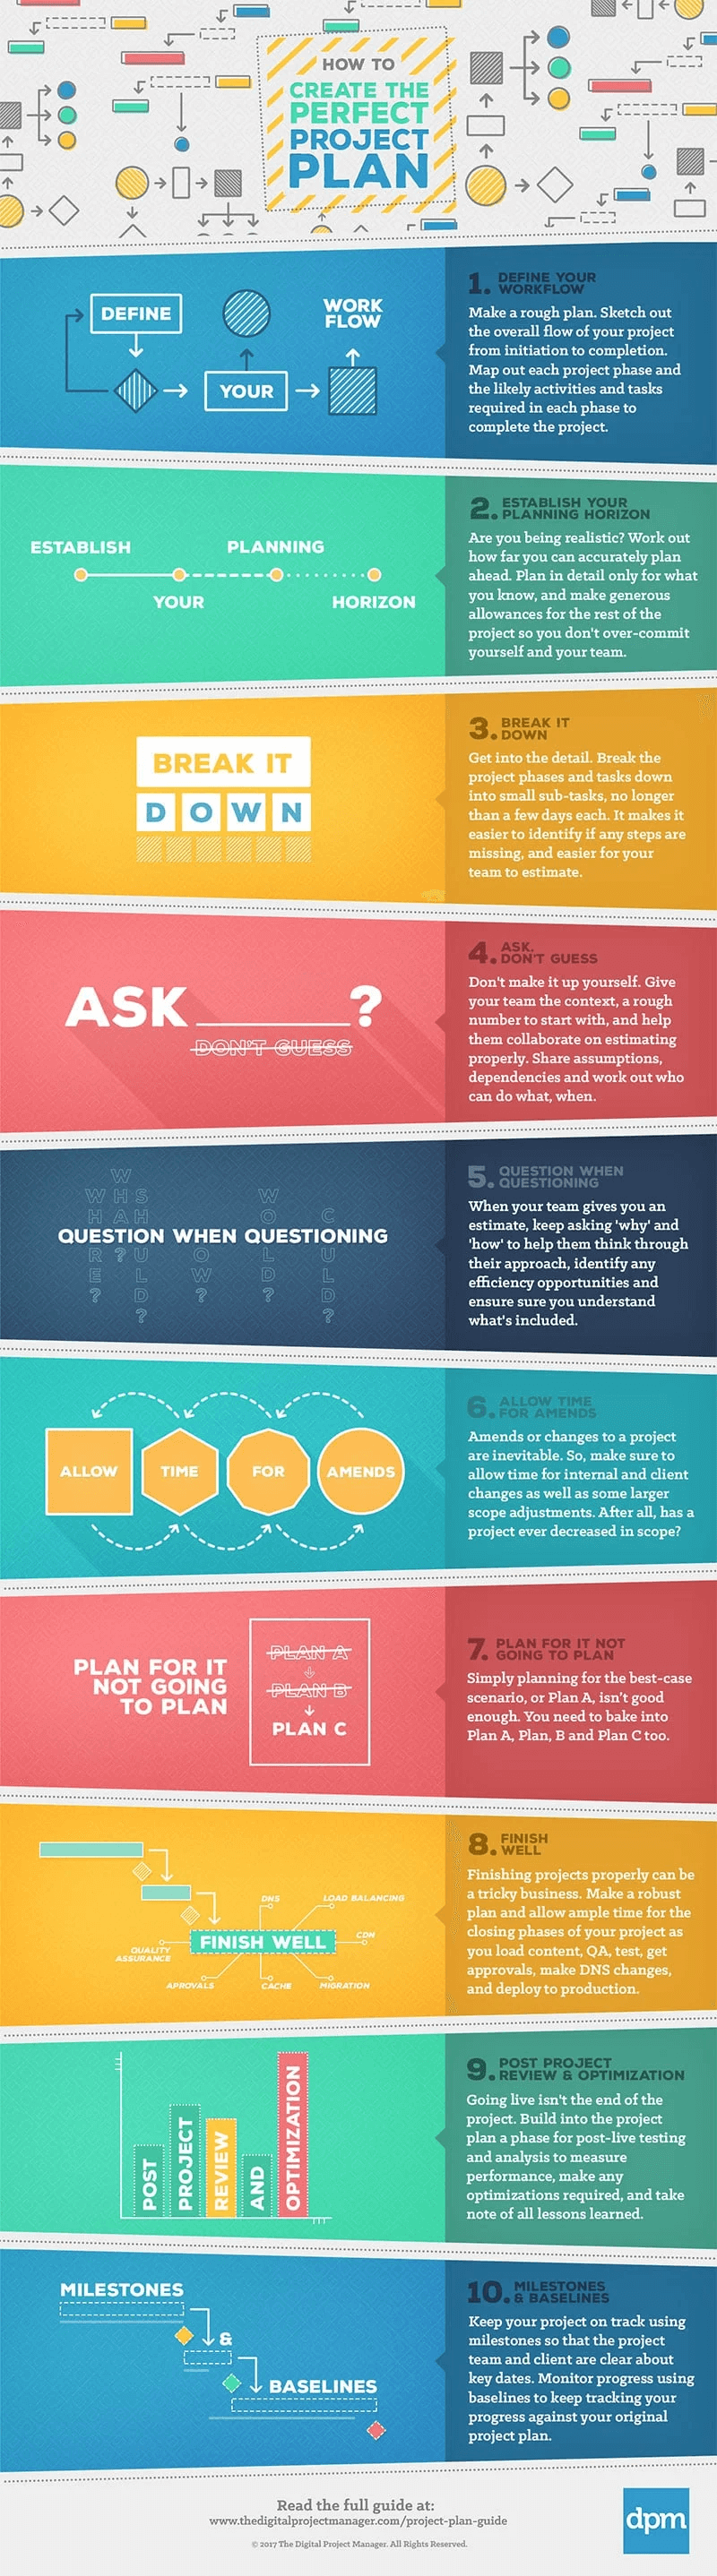 how to create the perfect project plan infographic